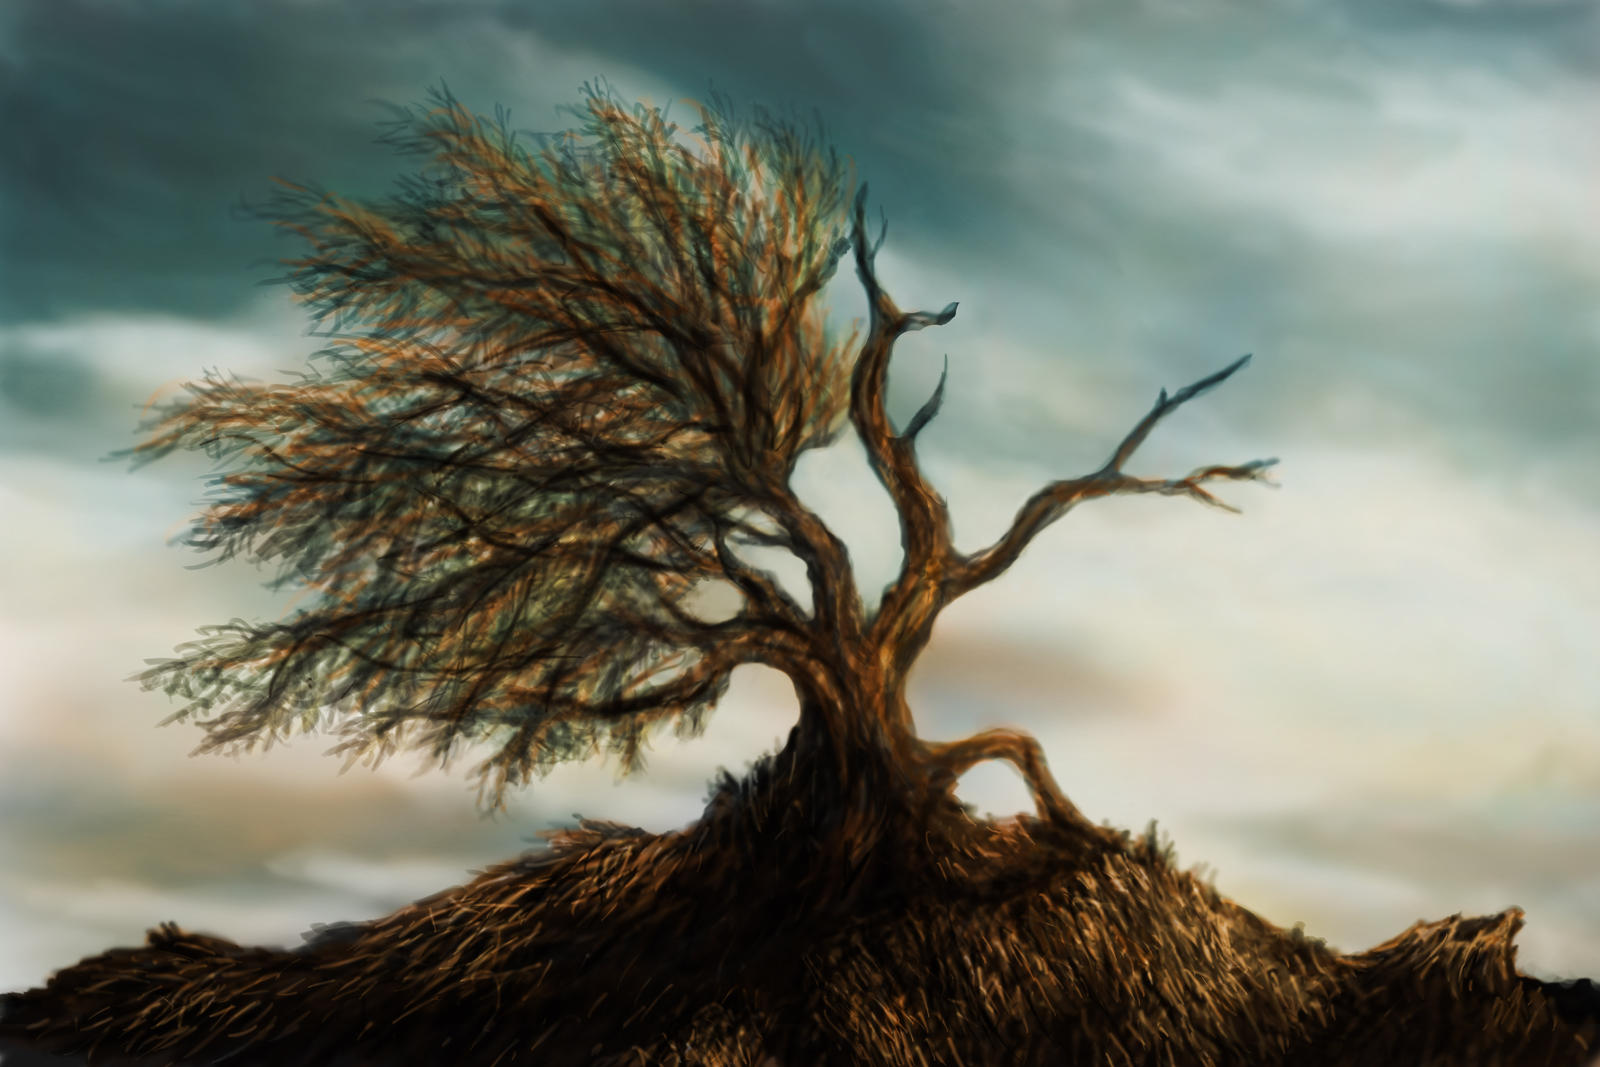 The Duality Tree by JakobHansson